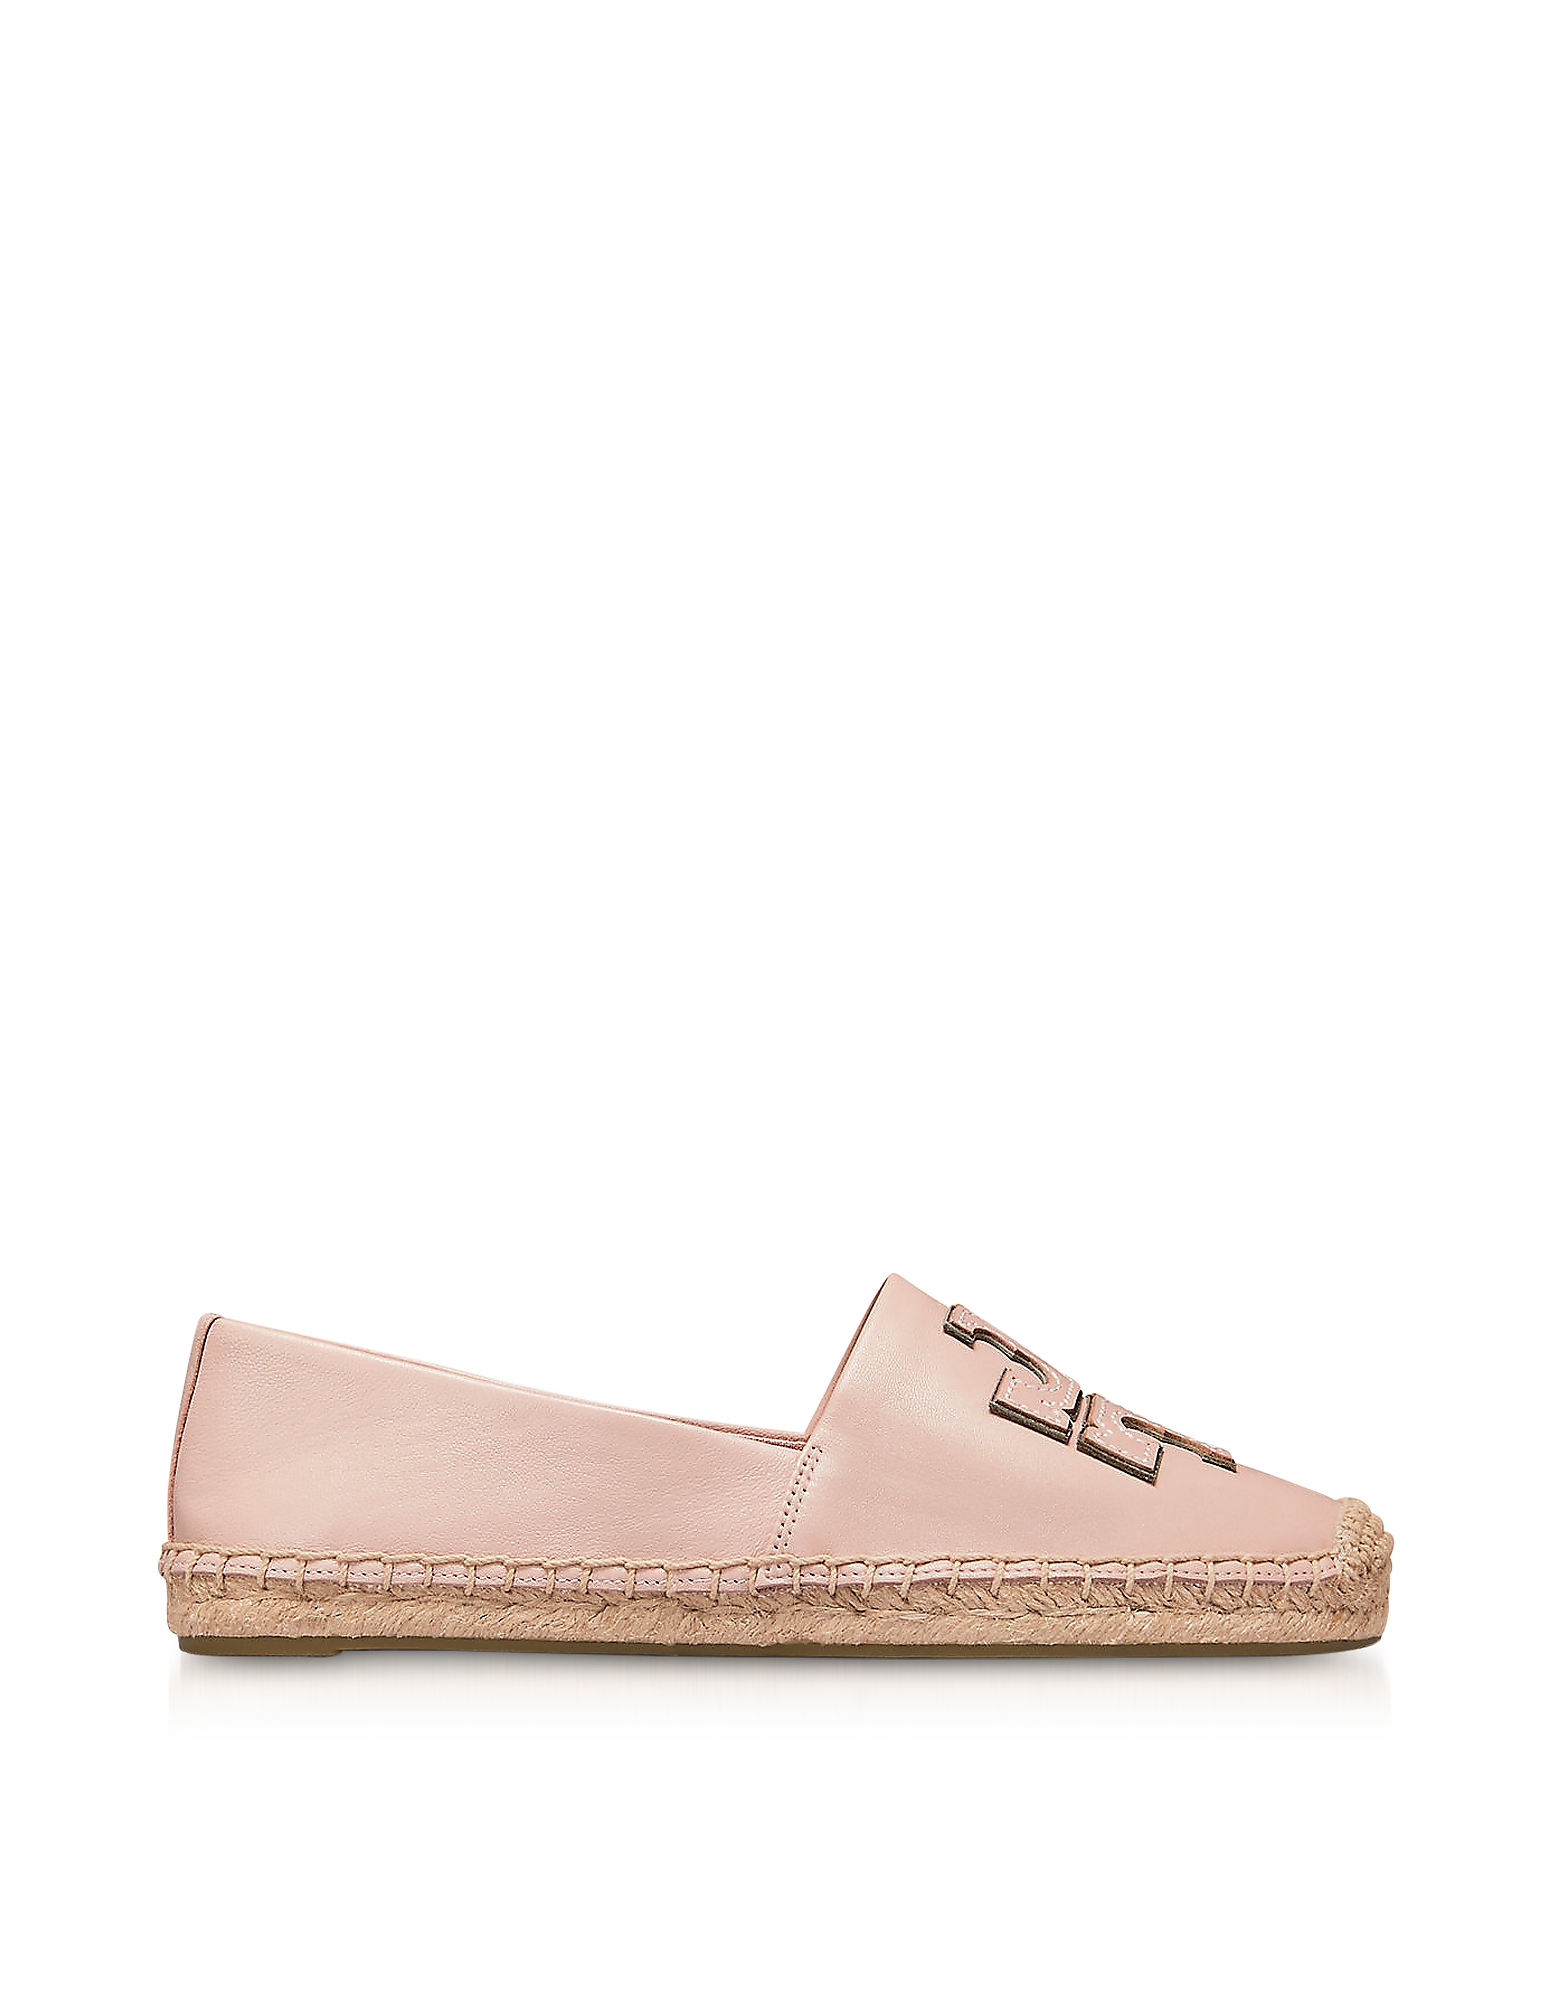 Tory Burch Shoes, Sea Shell Pink Ines Espadrilles